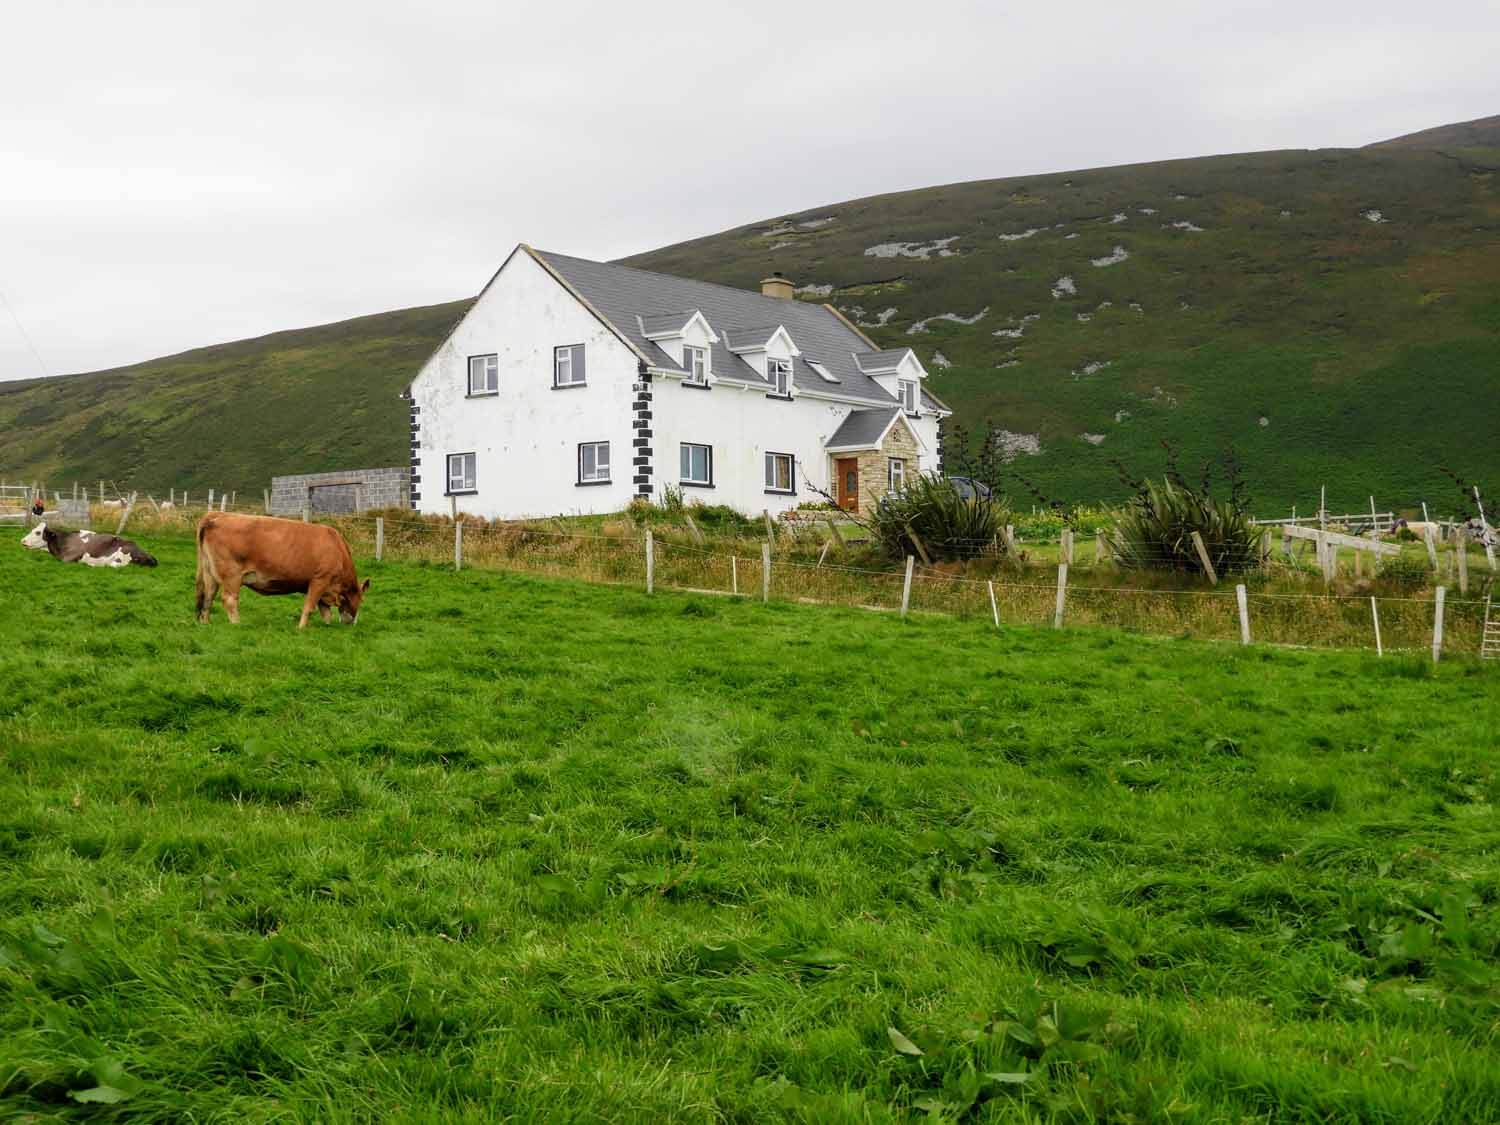 ireland-donegal-white-house-horse-fields.jpg